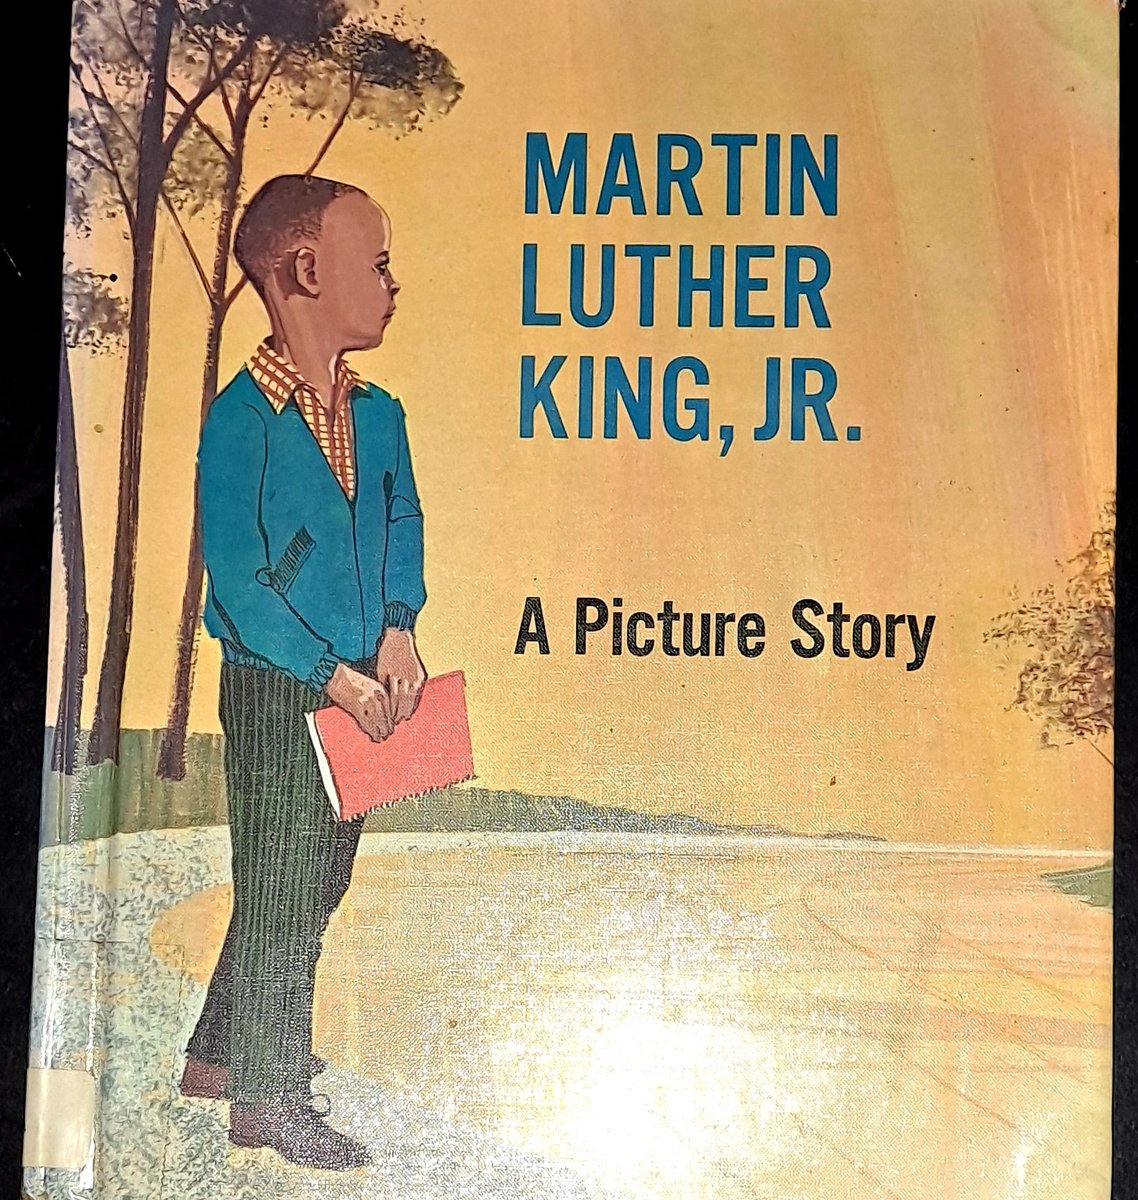 #Books collecting is another hobby I can't control. #Vintage #DIY #Autographed #History ones especially. Which I #trade or #sellingcontent. But in honor of #BlackHistoryMonth I want to post this one. #MartinLutherking